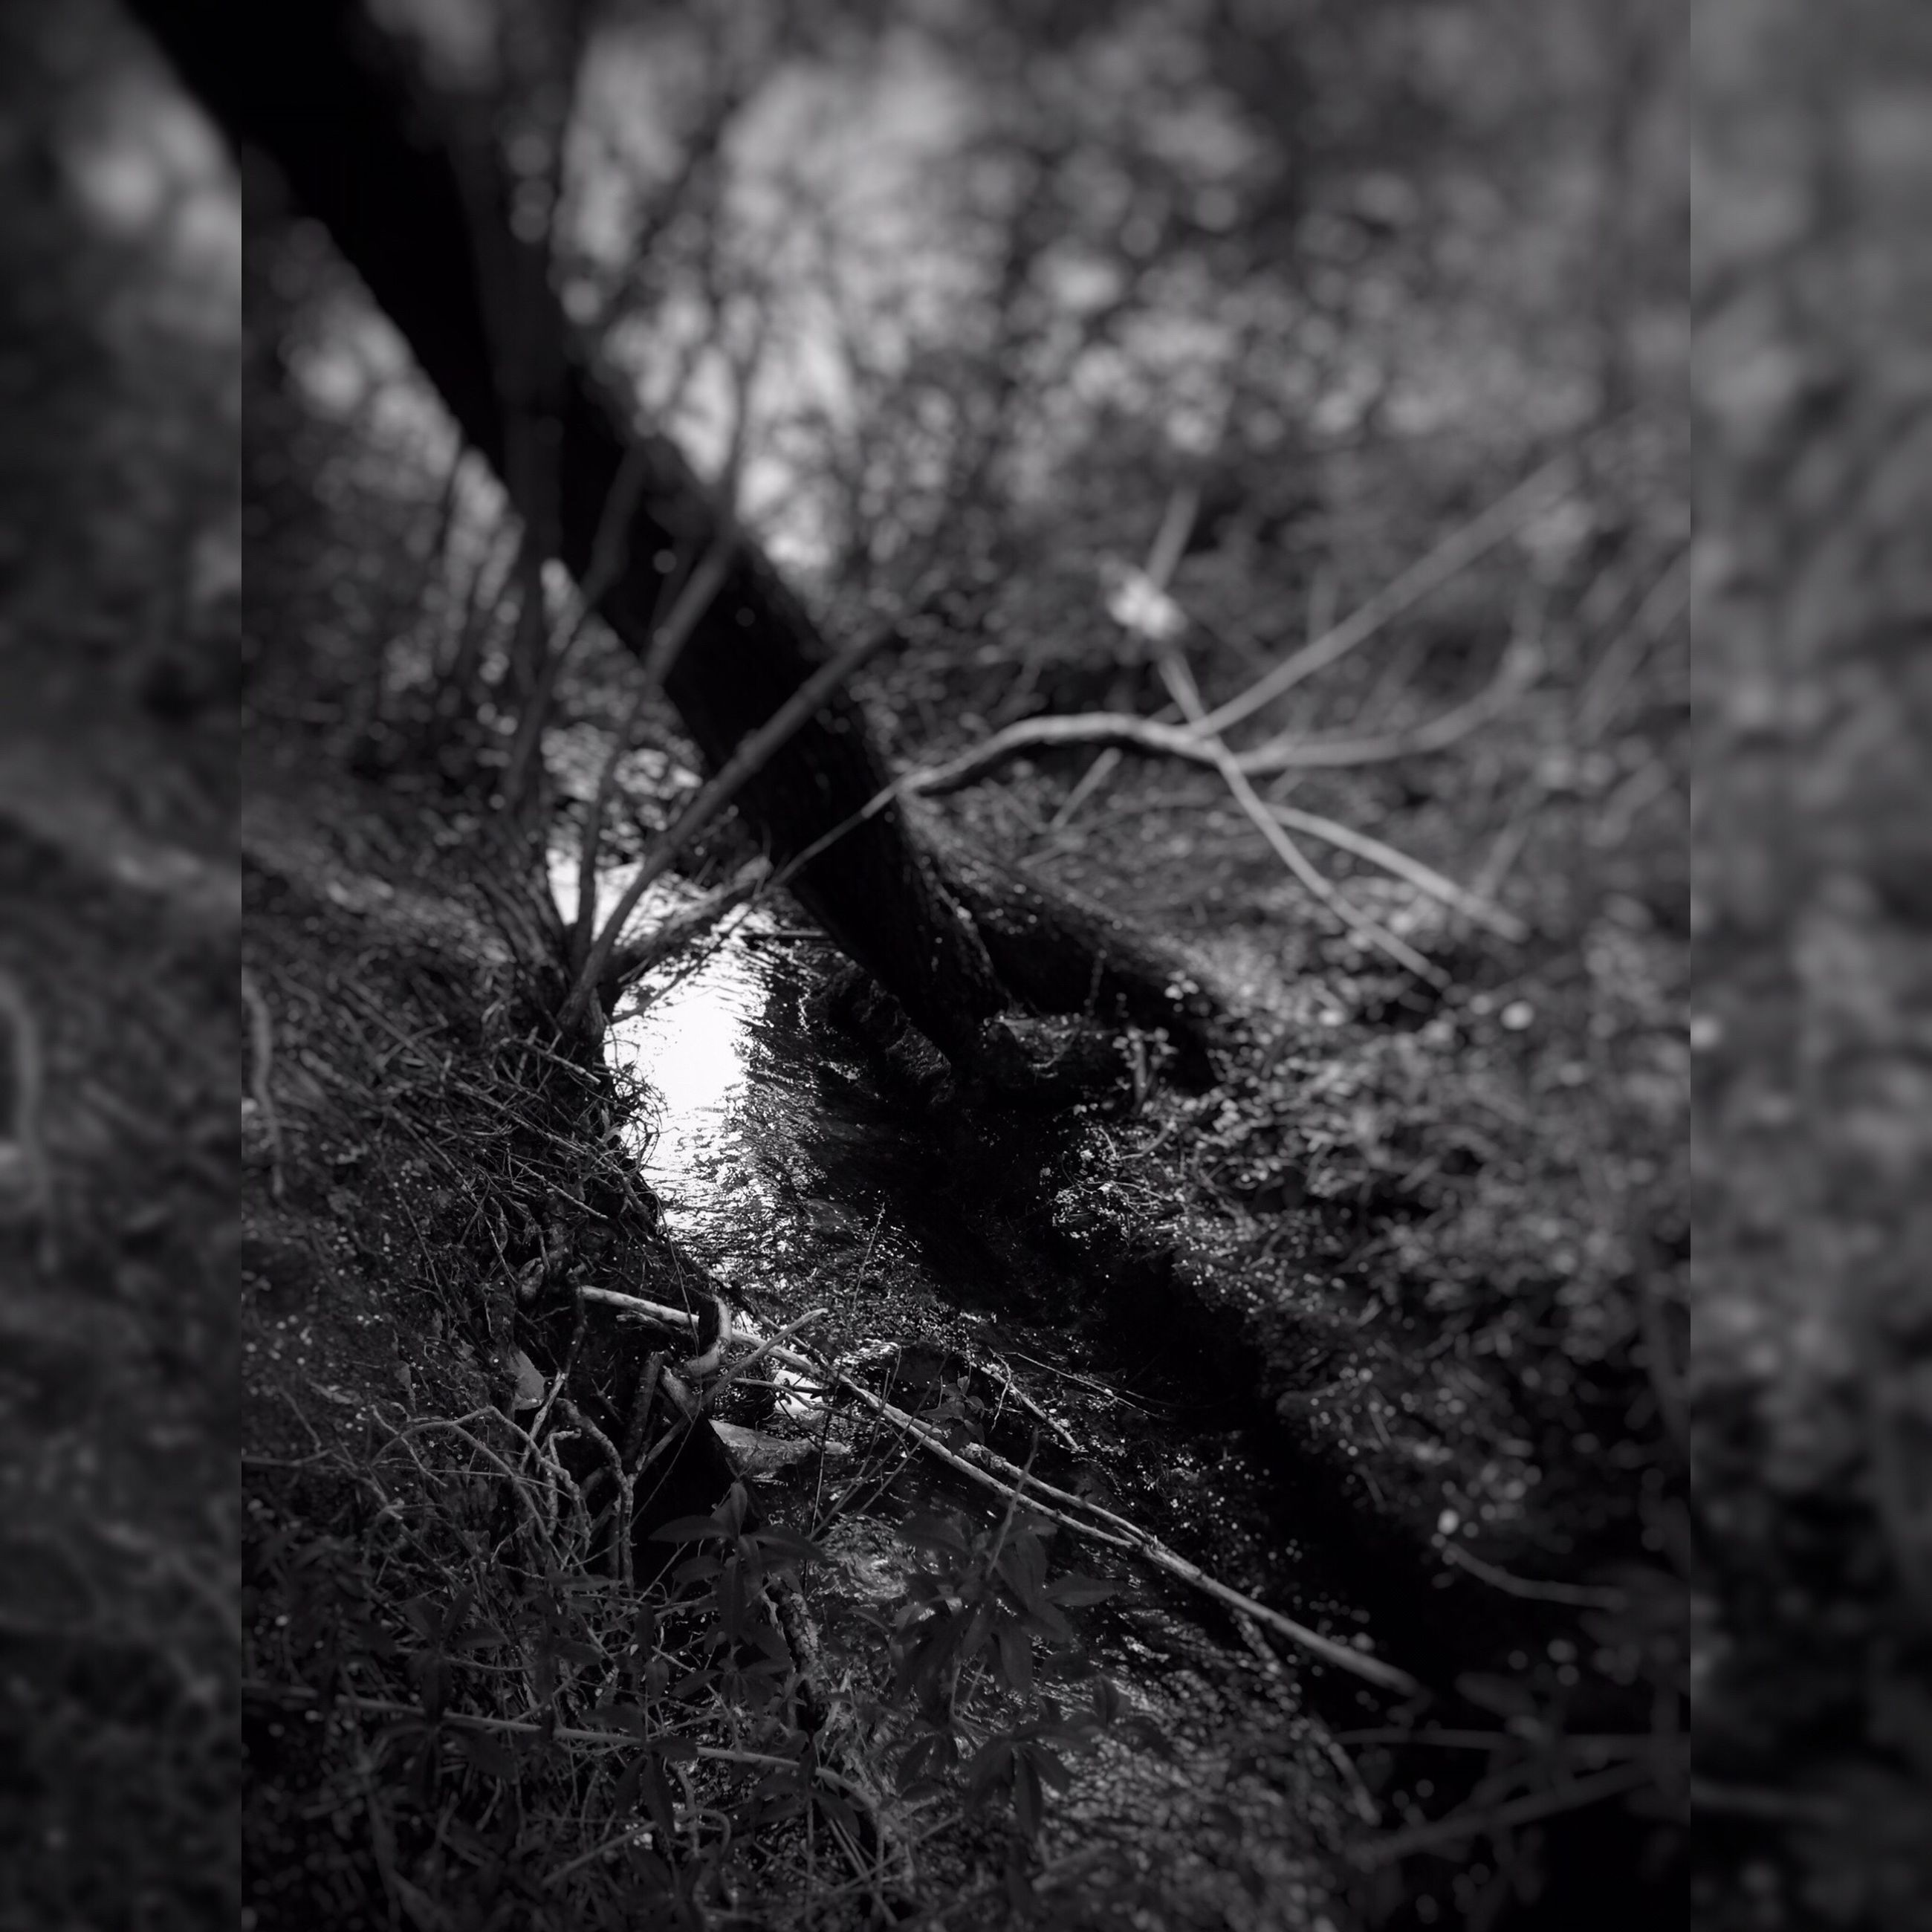 focus on foreground, close-up, growth, nature, tree, branch, forest, tree trunk, selective focus, plant, outdoors, day, twig, tranquility, dry, no people, beauty in nature, spider web, field, dead plant